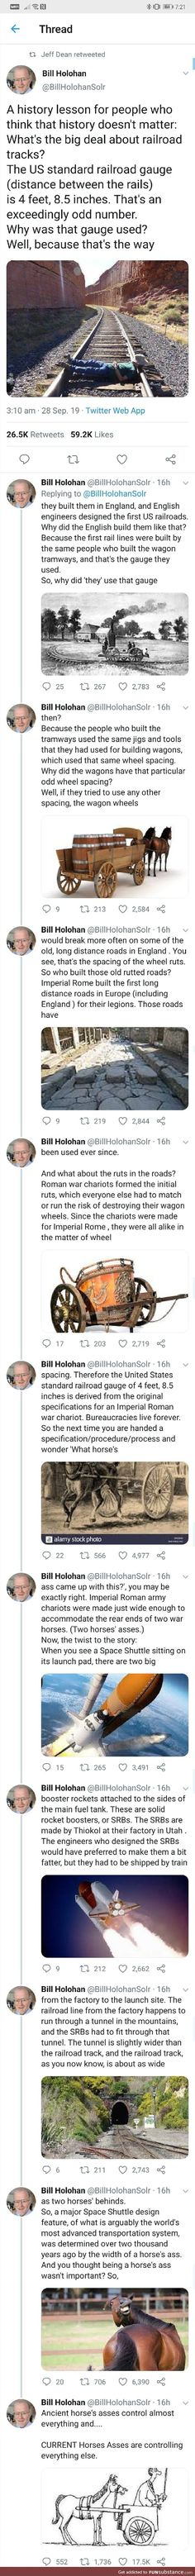 History Memes, History Facts, Funny Memes, Hilarious, Jokes, Wtf Fun Facts, Thats The Way, The More You Know, Interesting History